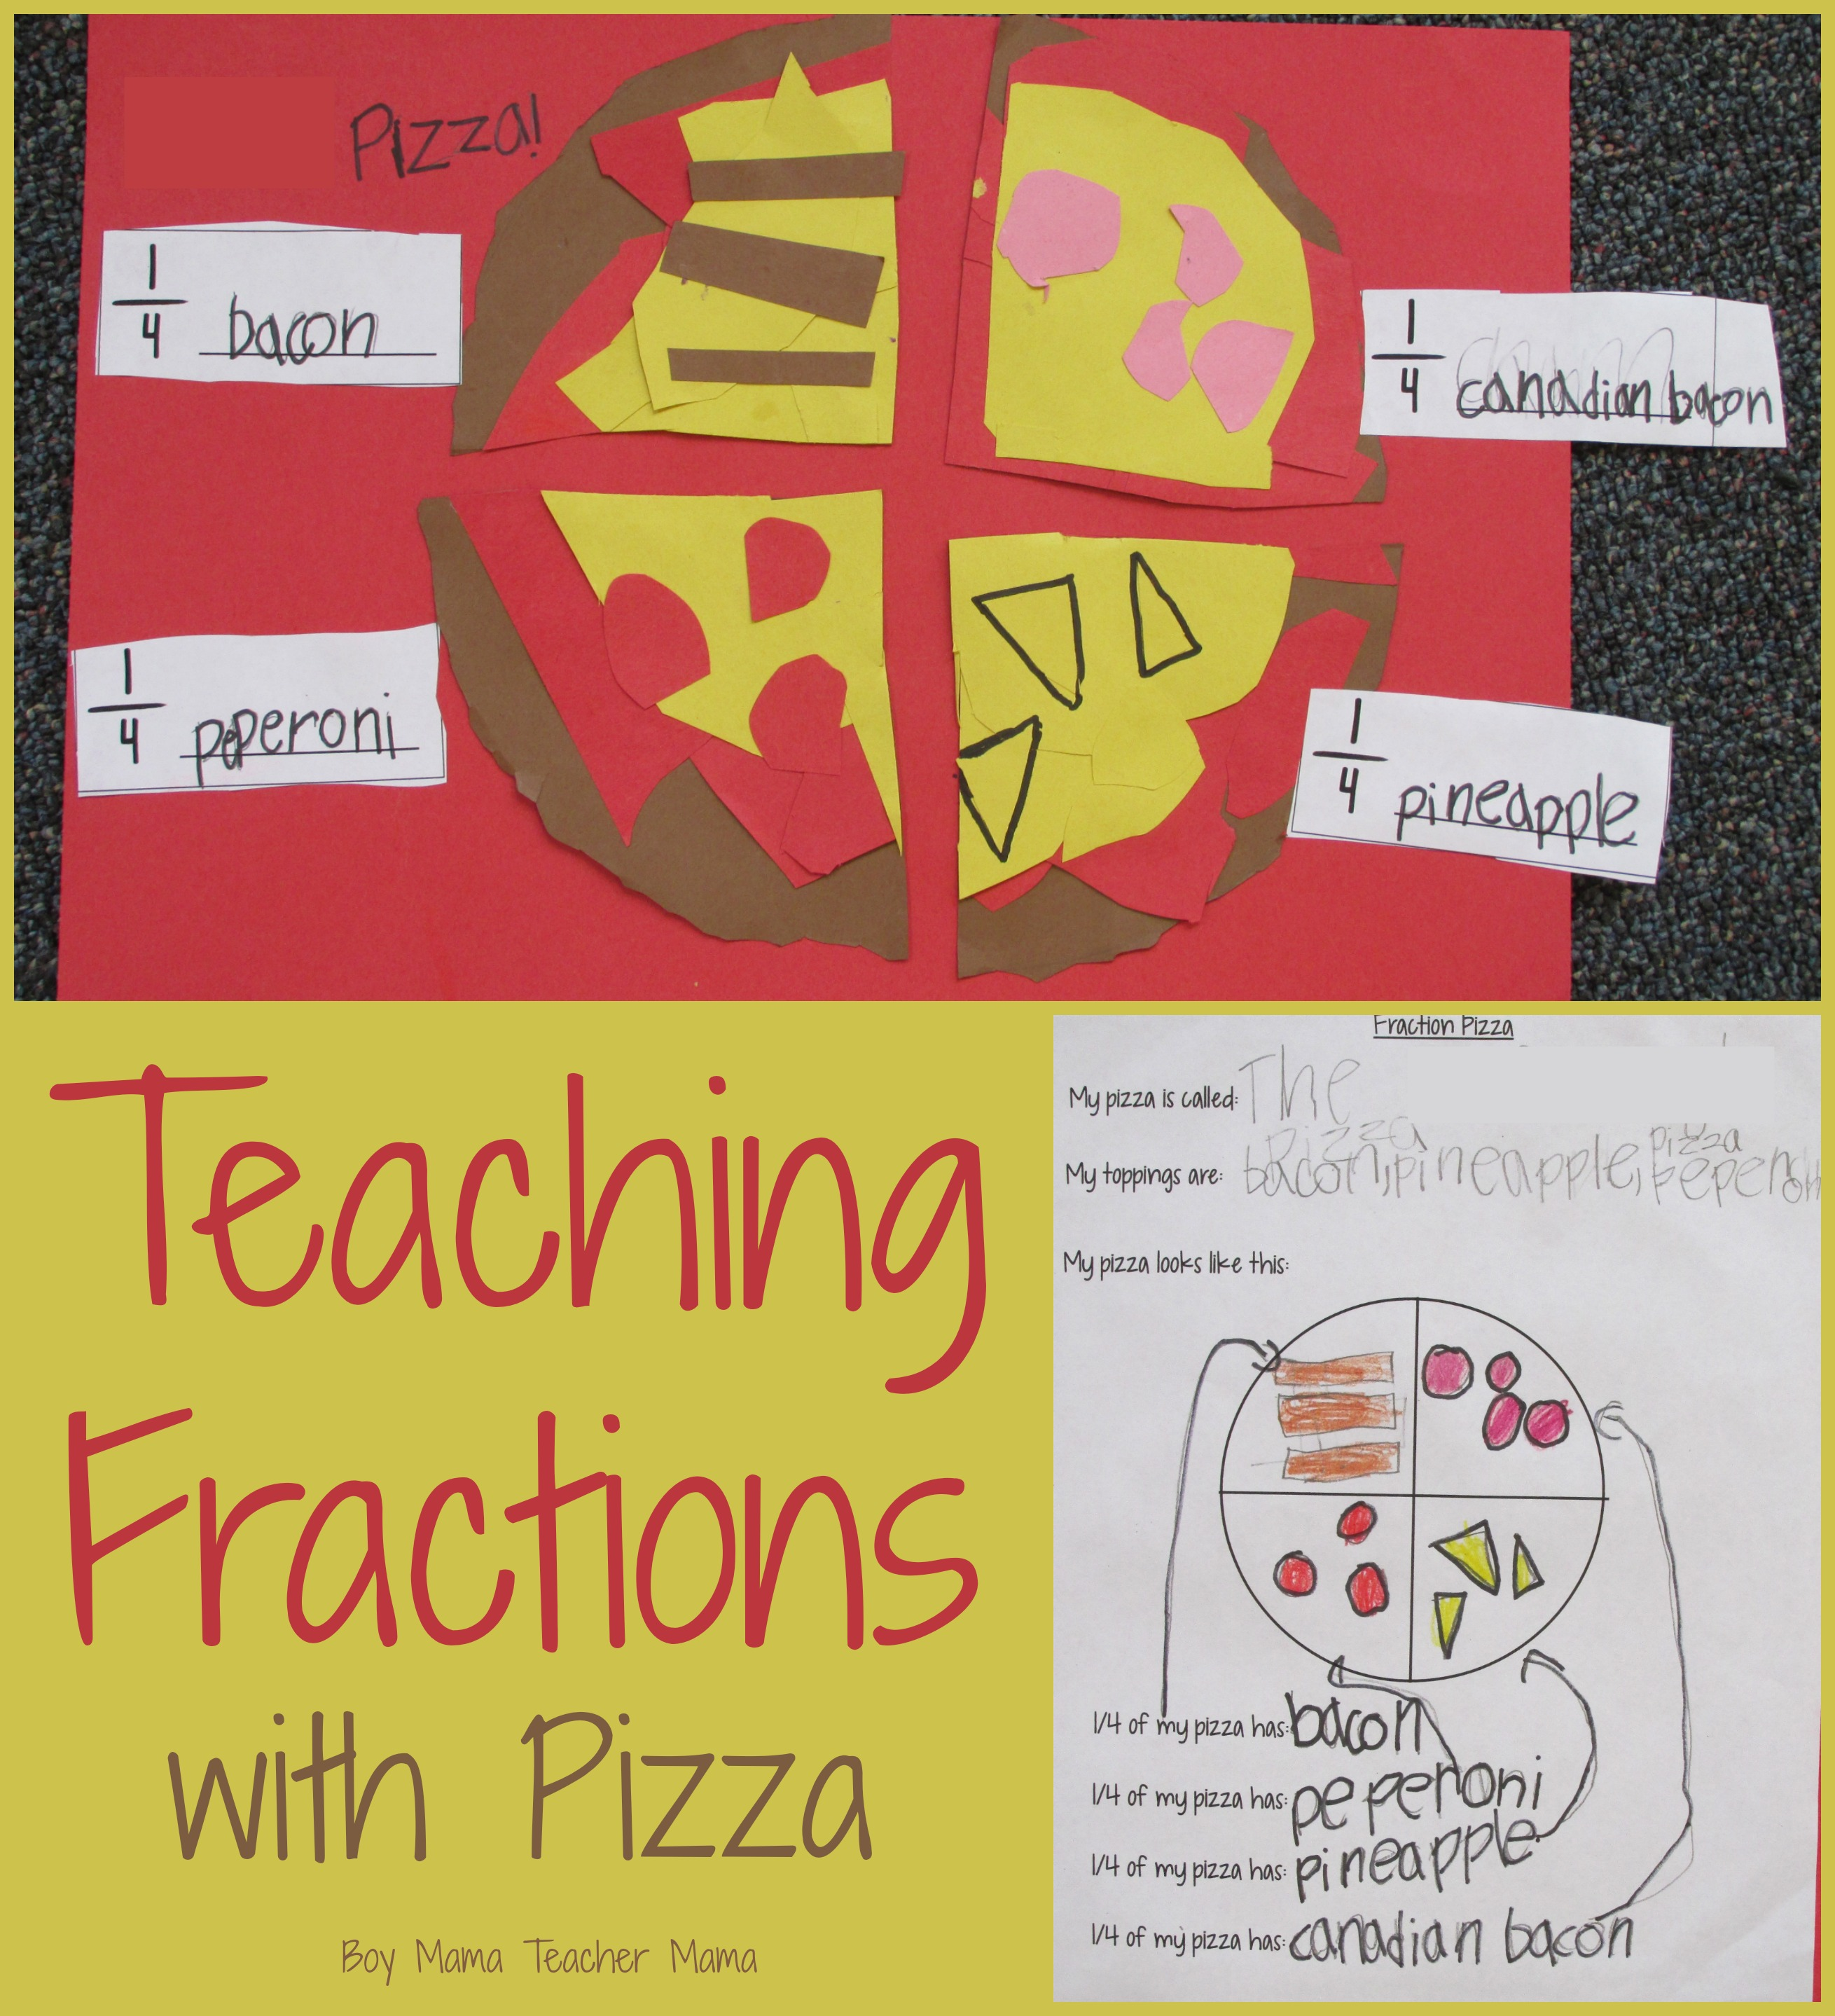 teacher mama: teaching fractions with pizza - boy mama teacher mama